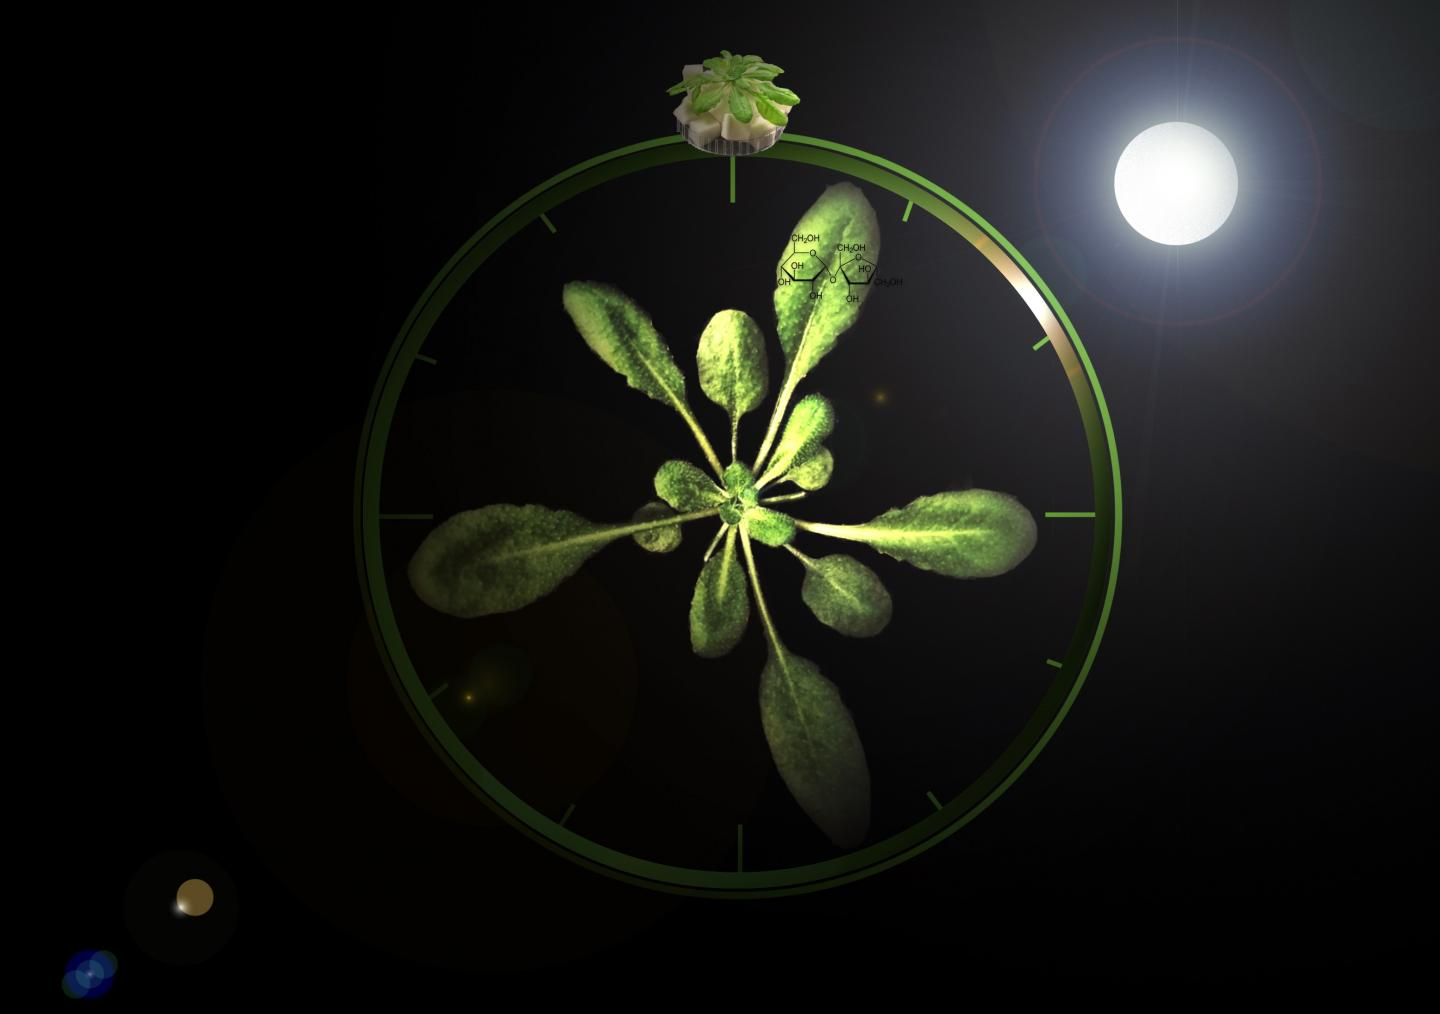 The Plant as a Clock